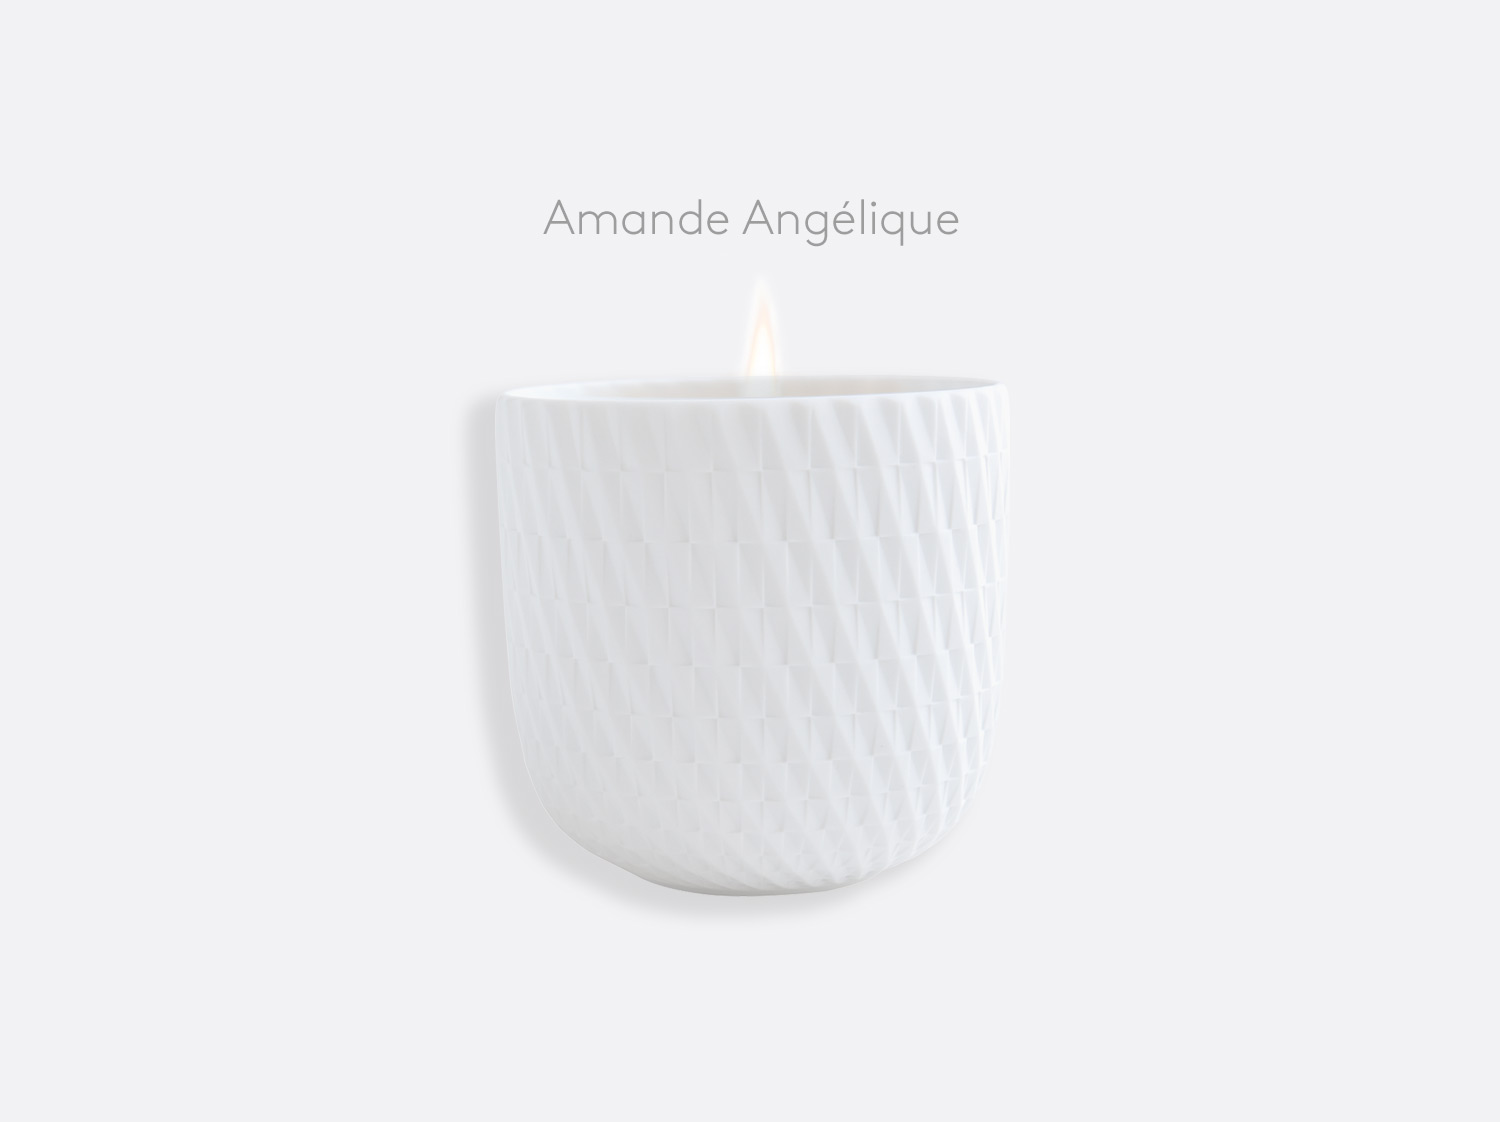 "Pot à bougie 200g rechargeable en biscuit gravé ""Amande Angélique"" en porcelaine de la collection TWIST Bernardaud"